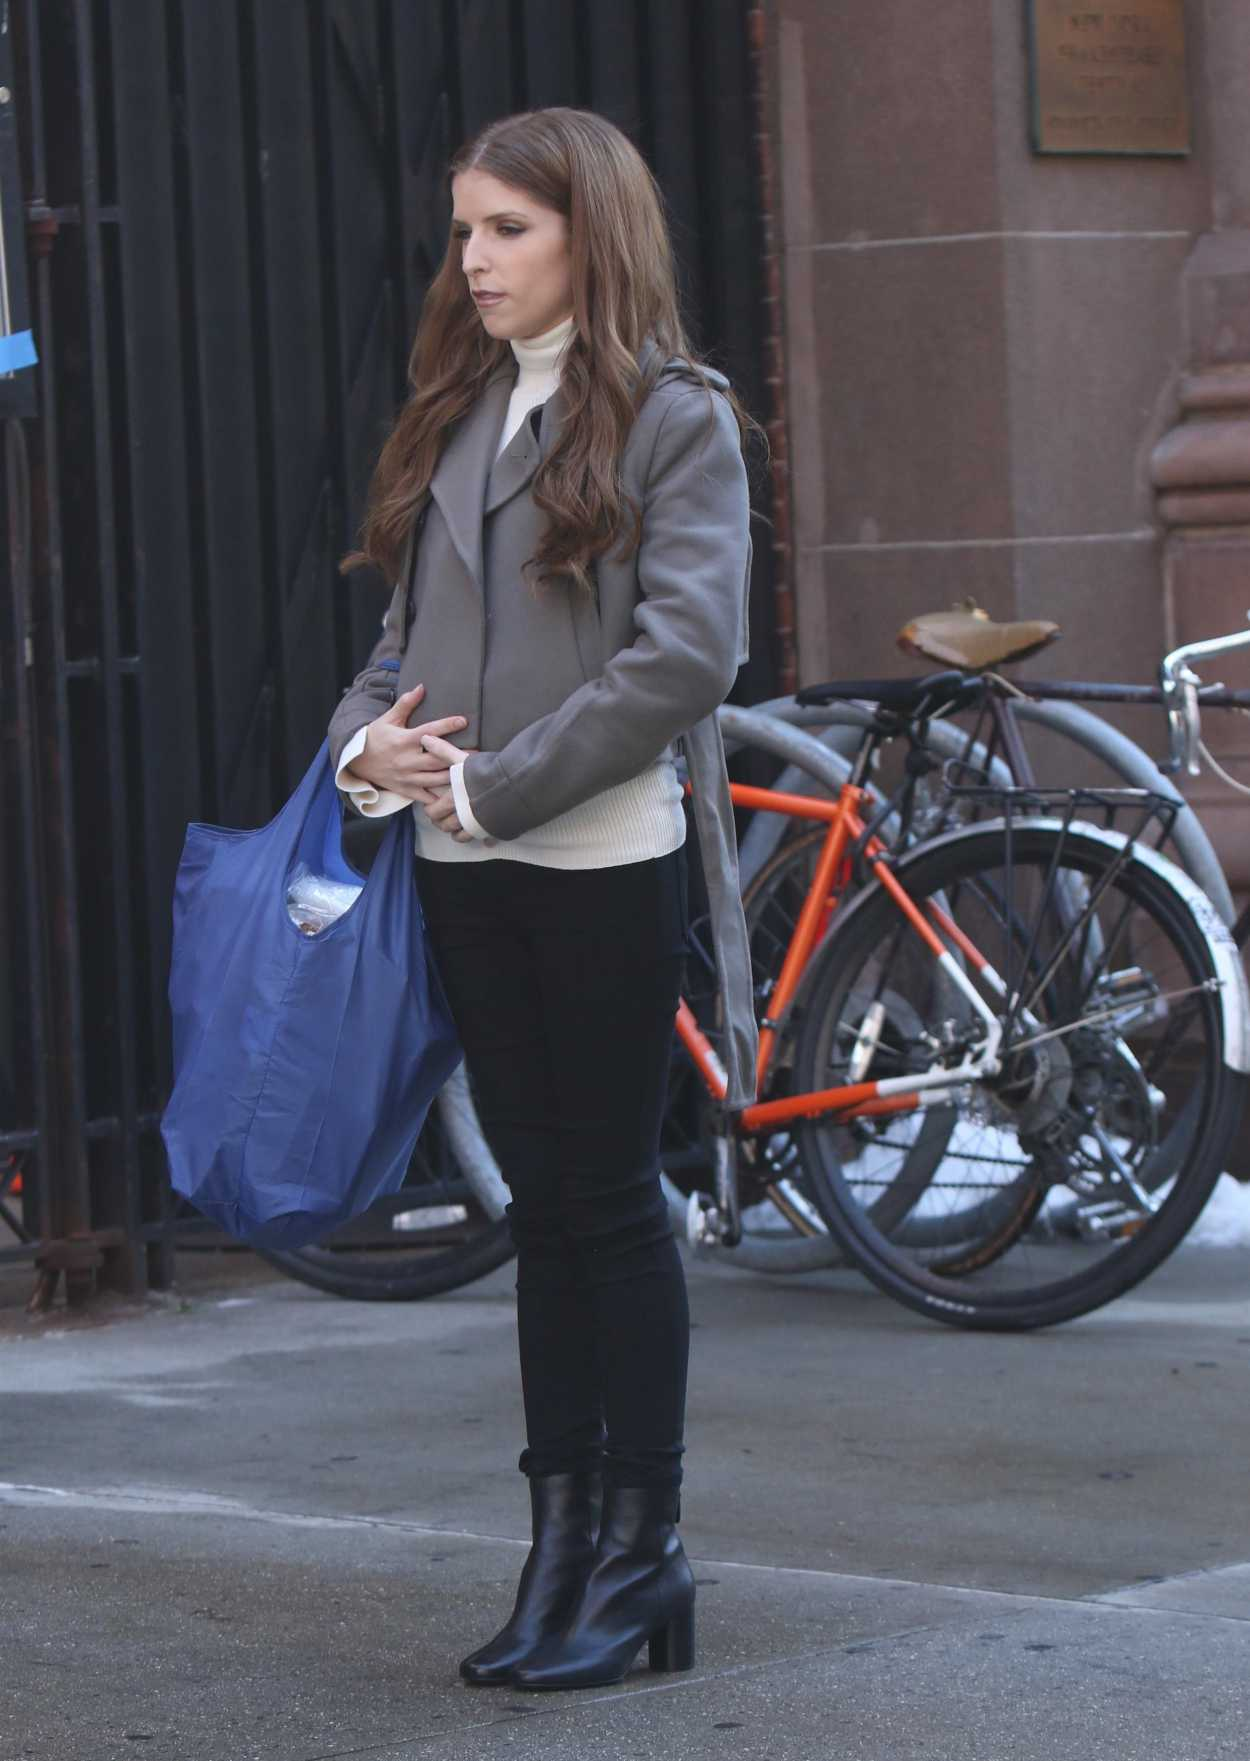 Anna Kendrick In A Gray Jacket On The Set Of Love Life